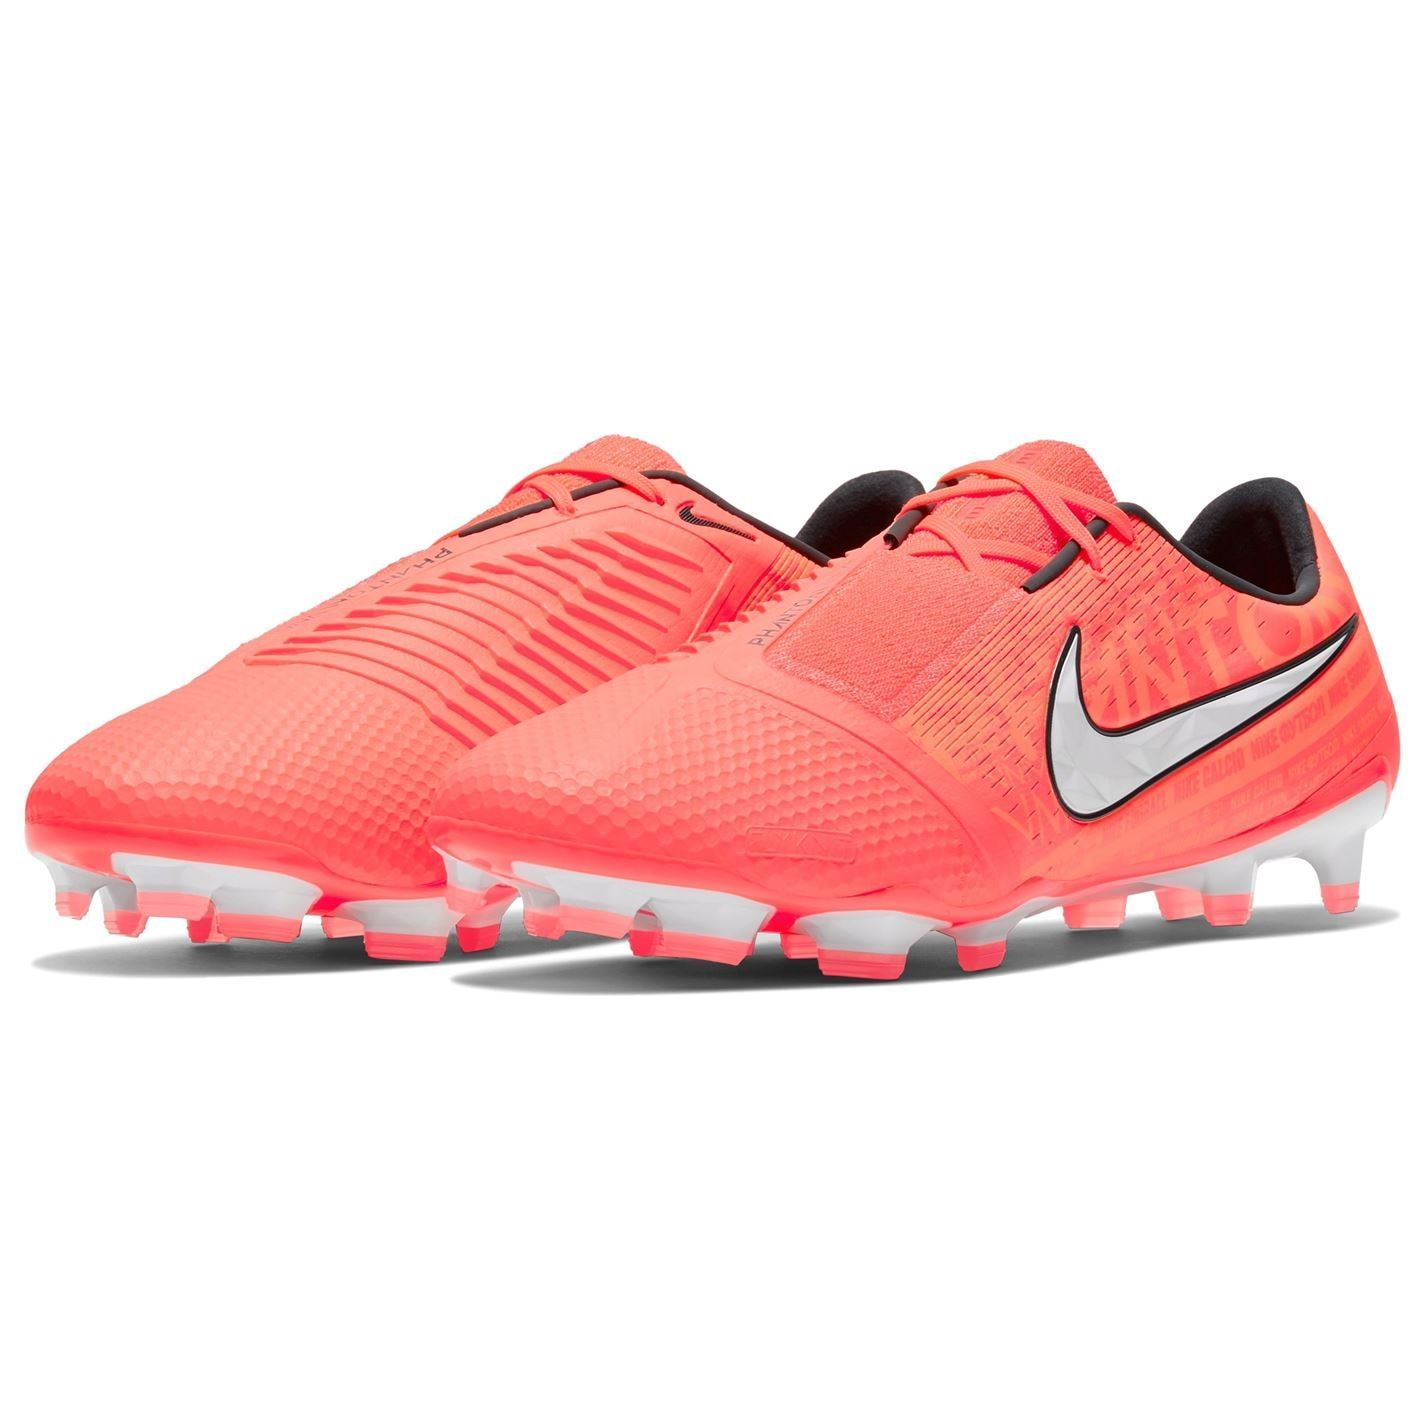 Nike-Phantom-Venom-Elite-Homme-FG-Firm-Ground-Chaussures-De-Football-Chaussures-de-foot-crampons miniature 7